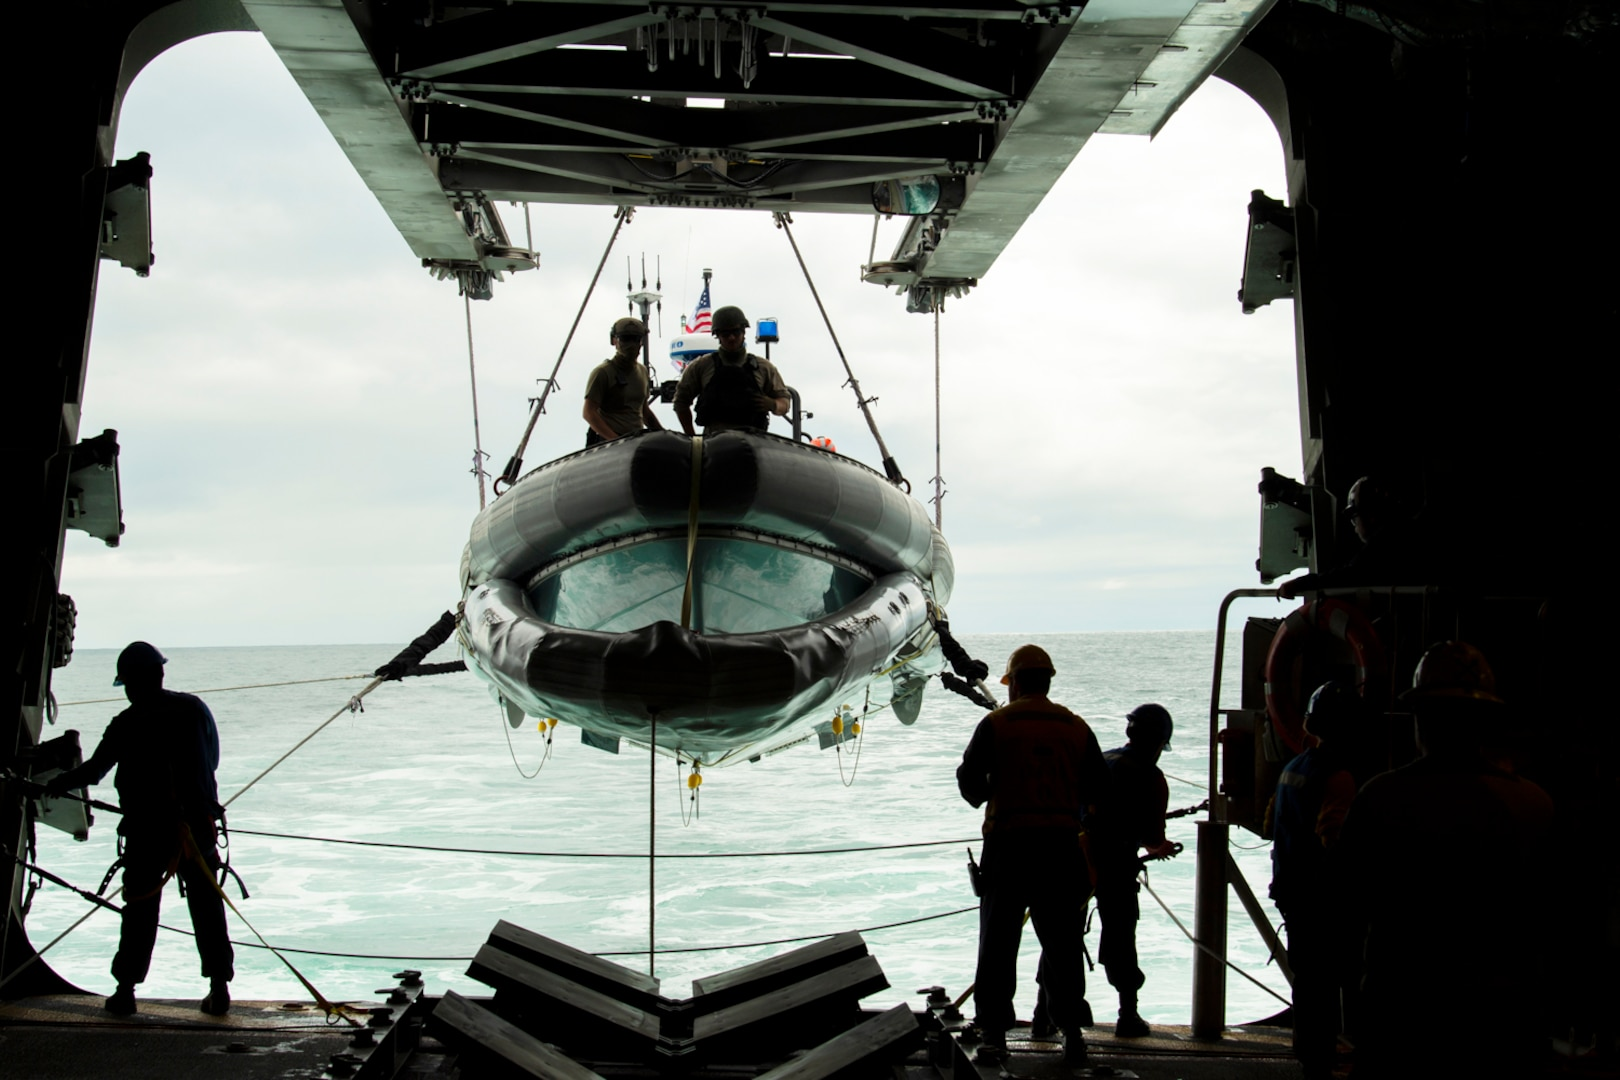 A small inflatable boat is lowered into the ocean.